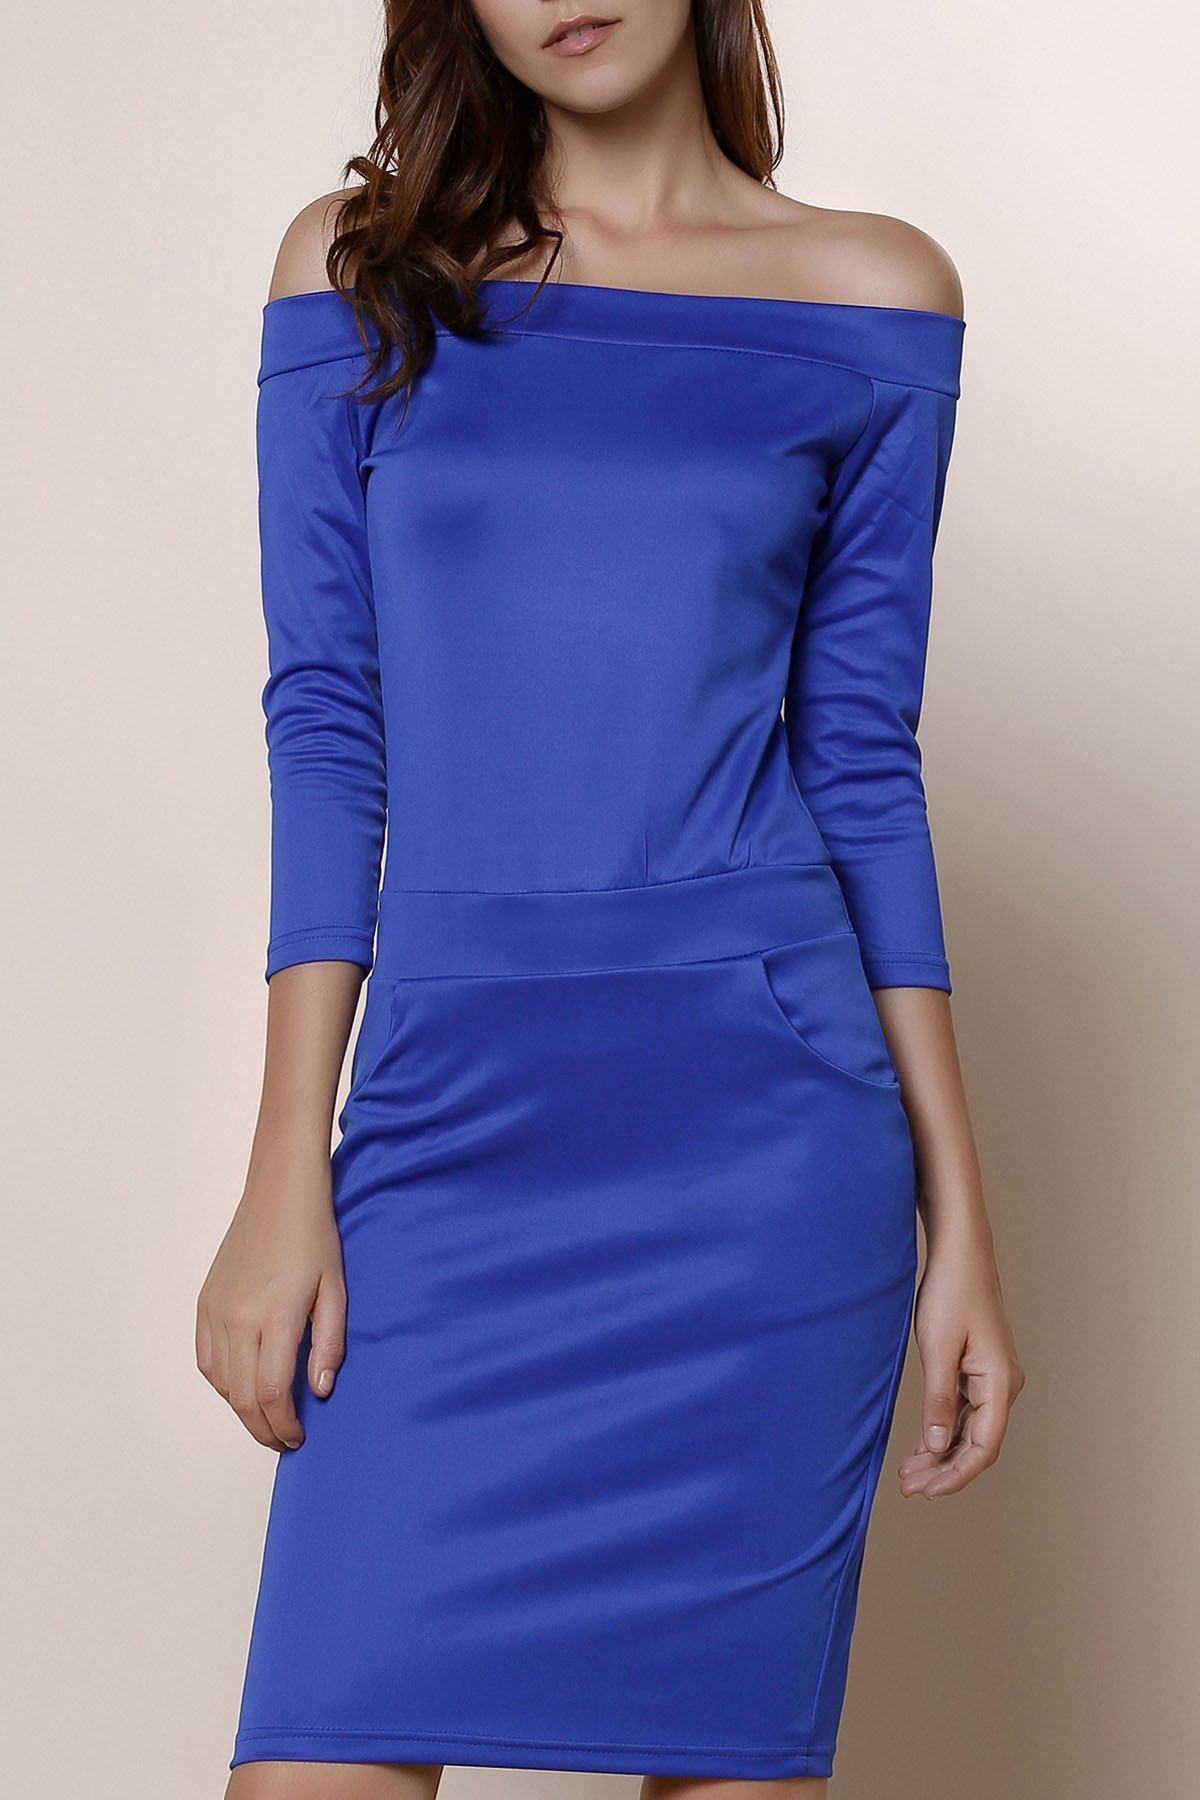 Brief Blue Off The Shoulder Long Sleeve Dress For Women